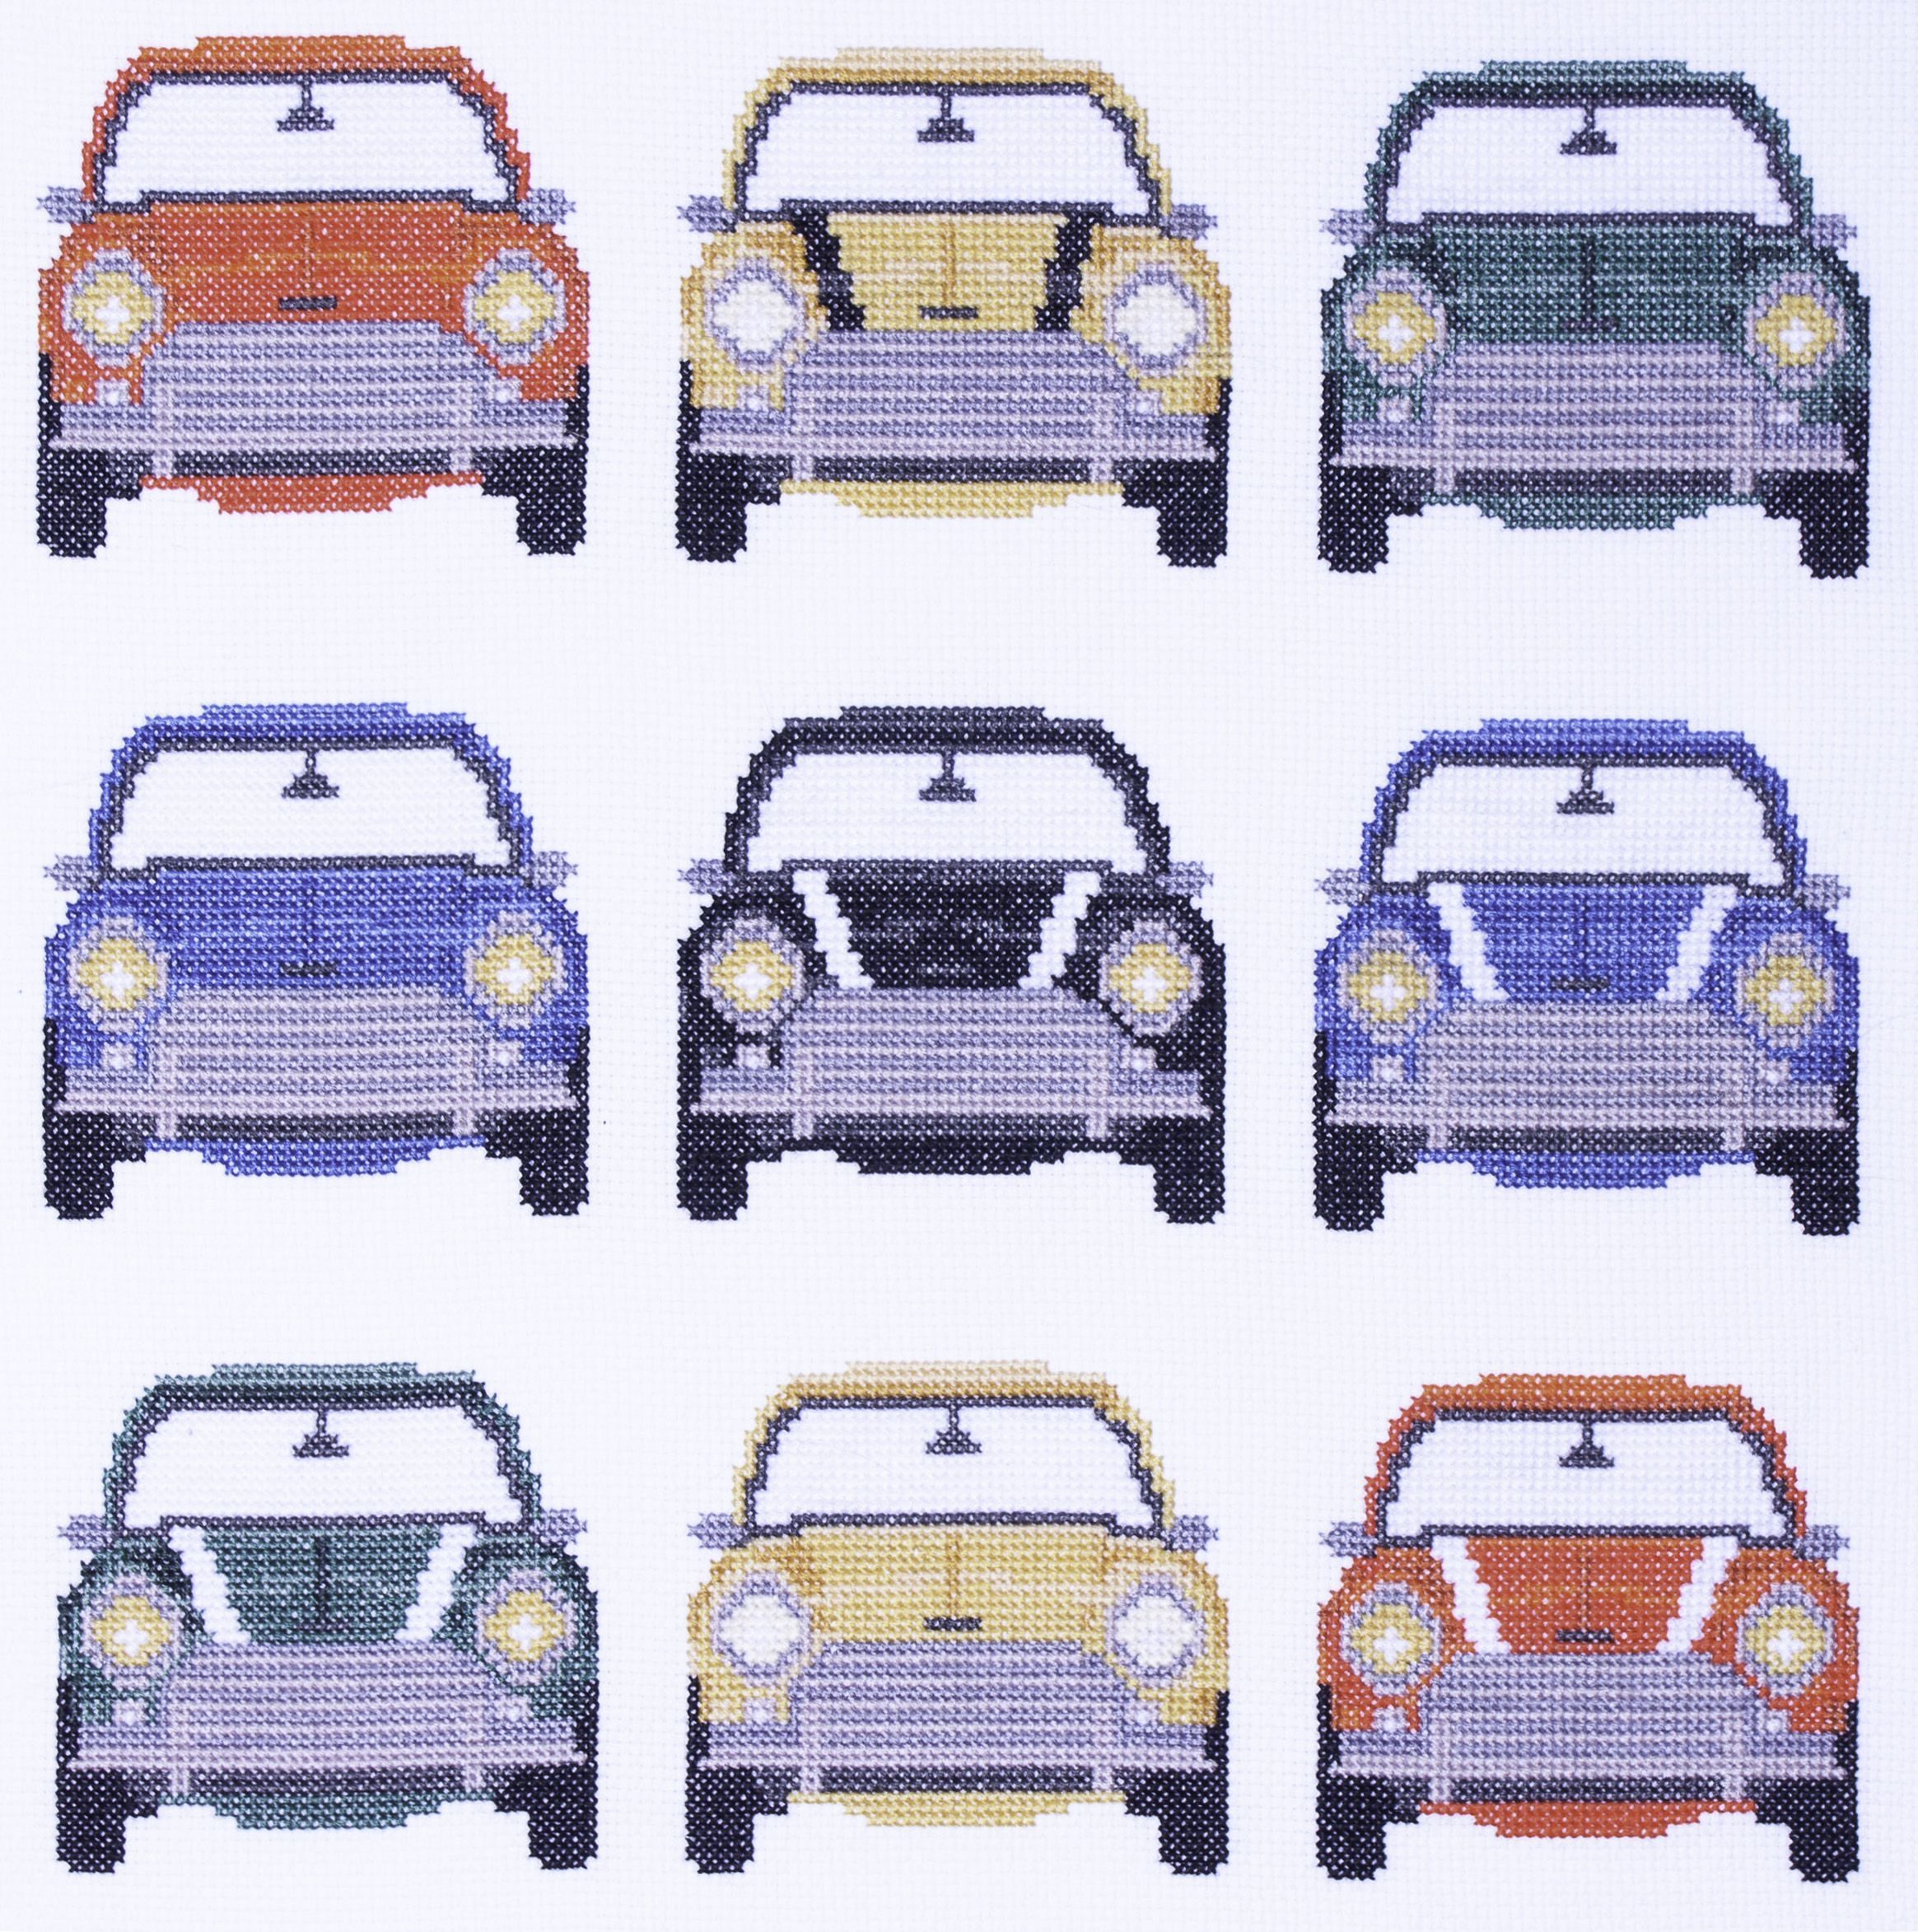 Minis galore in a square formation – perfect for a cushion! Reasons you need this kit Great as a gift for a car enthusiast (stitched or unstitched) Square design – perfect for a cushion Stitch in front of the TV for relaxation Kit contents Because you're investing your time, we invest in the highest quality …